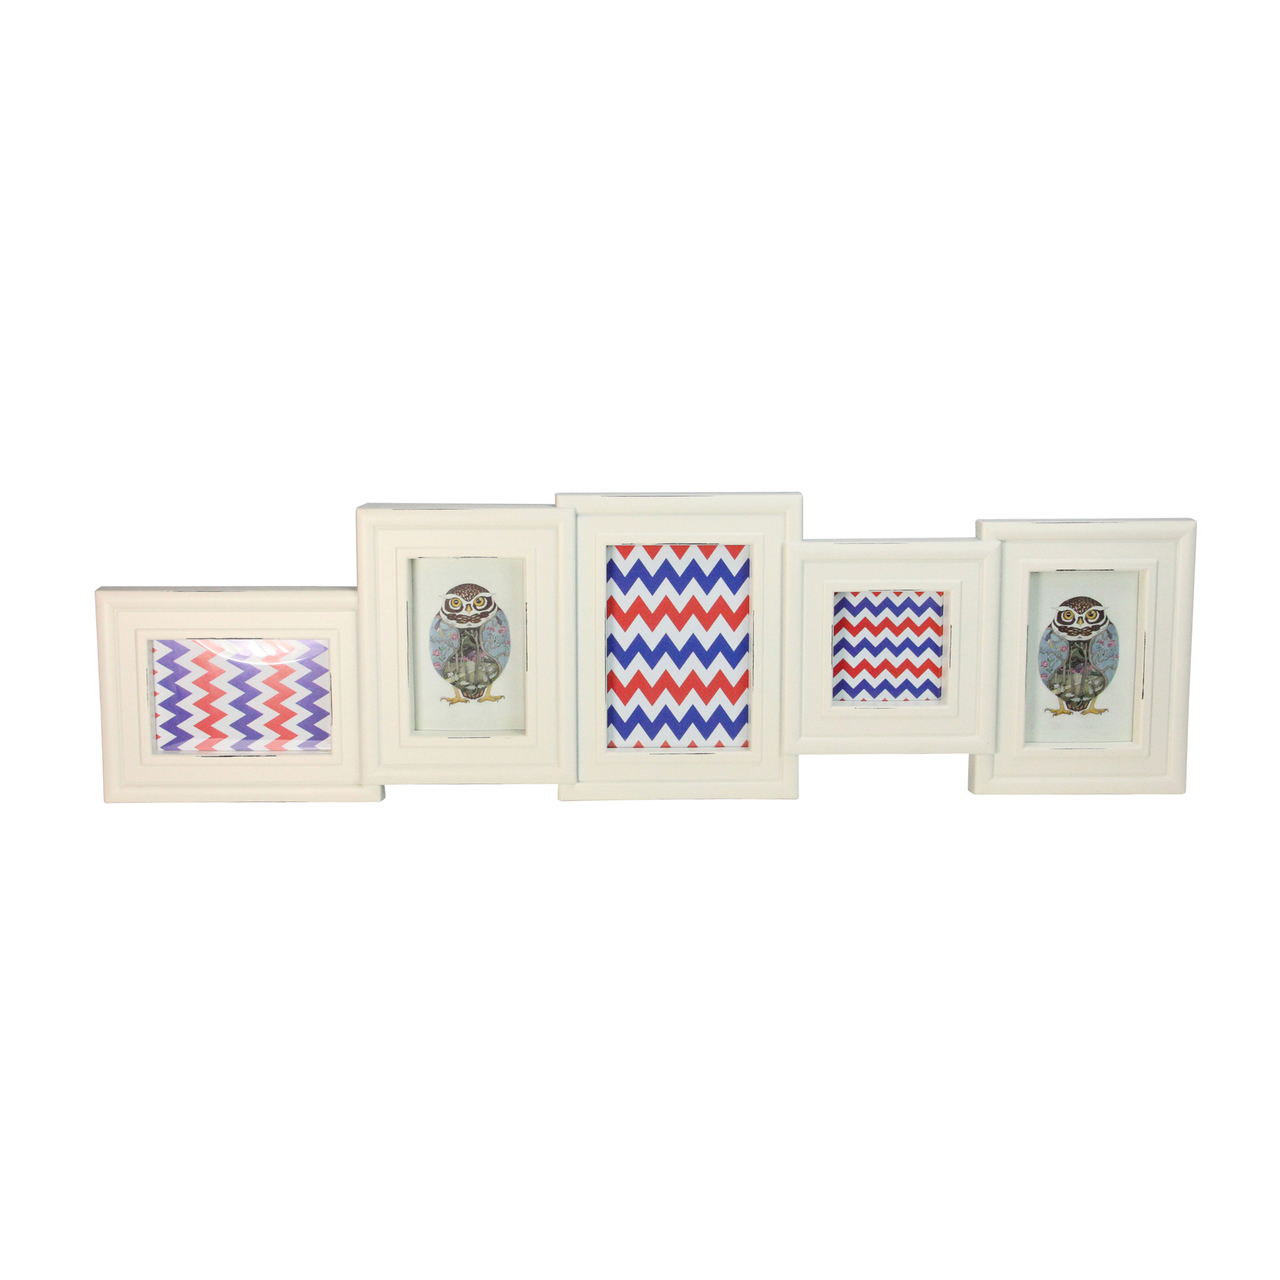 Hanging Wall Photo Frames